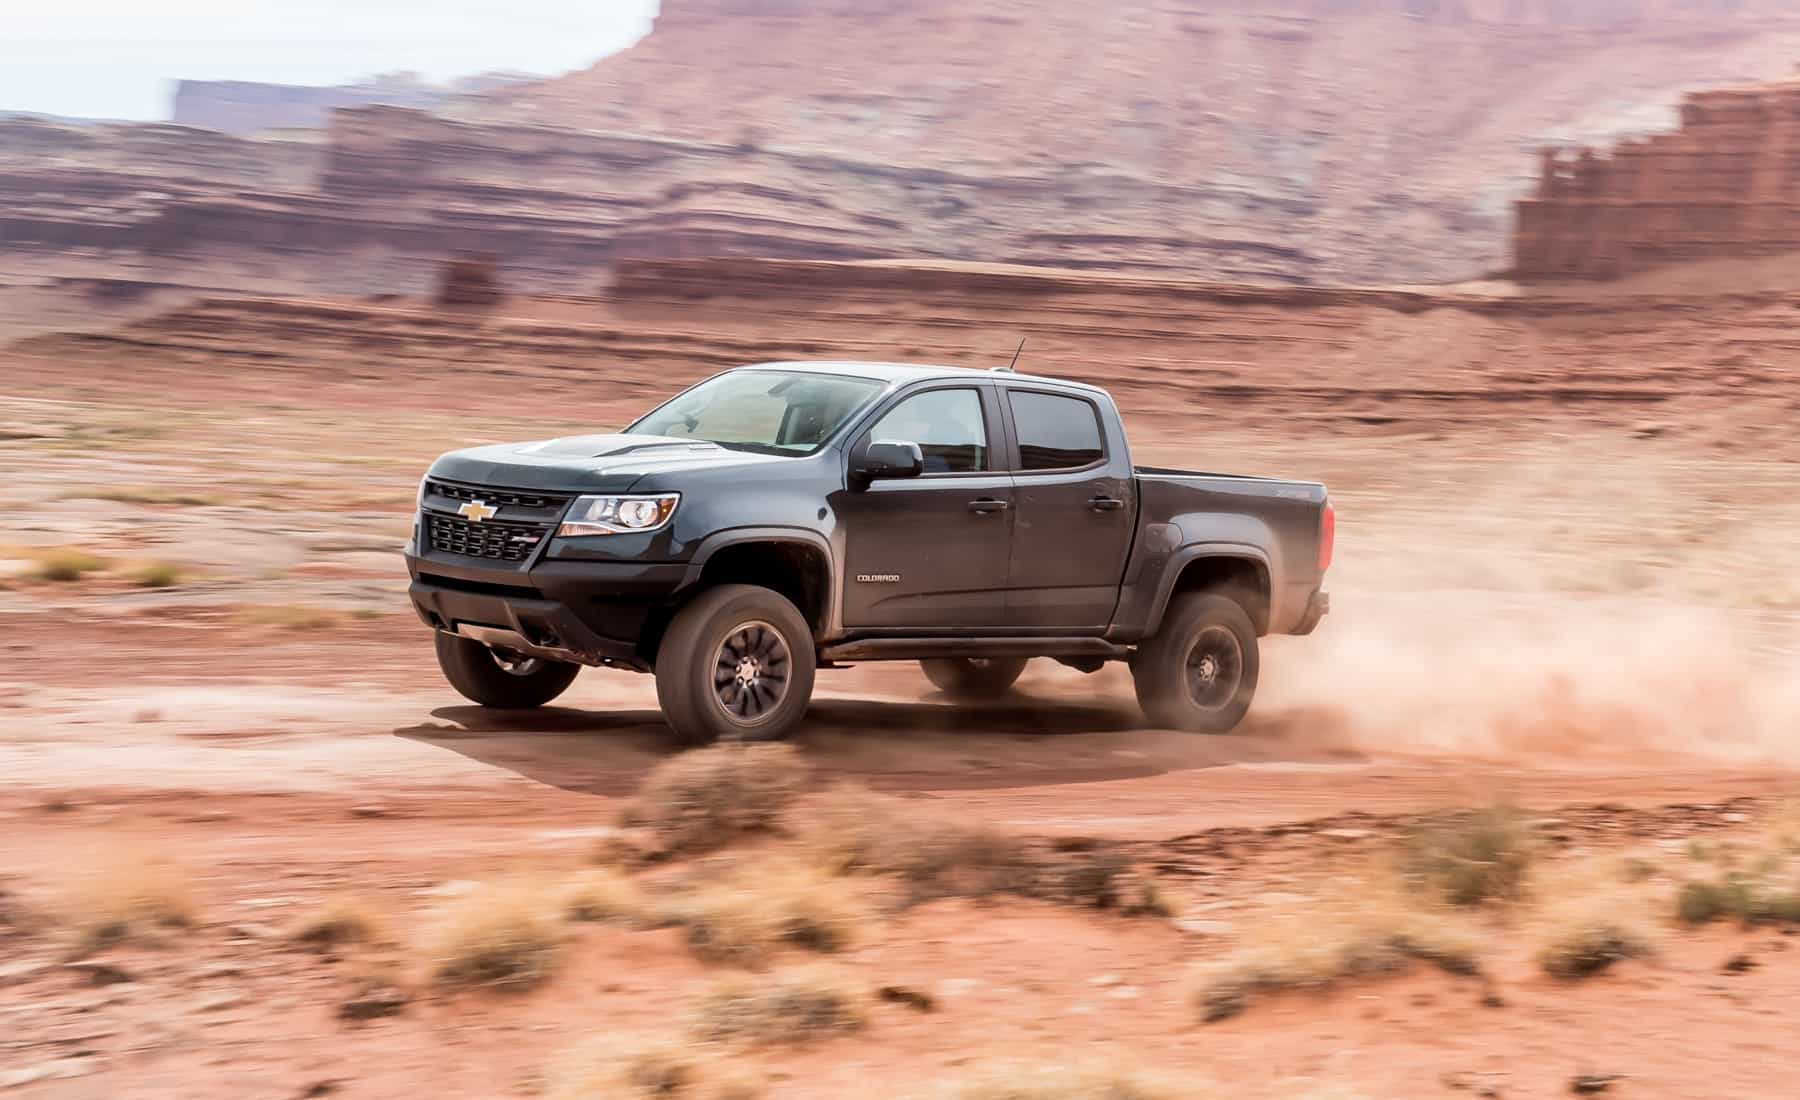 2017 Chevrolet Colorado ZR2 Pictures Gallery (16 Images)